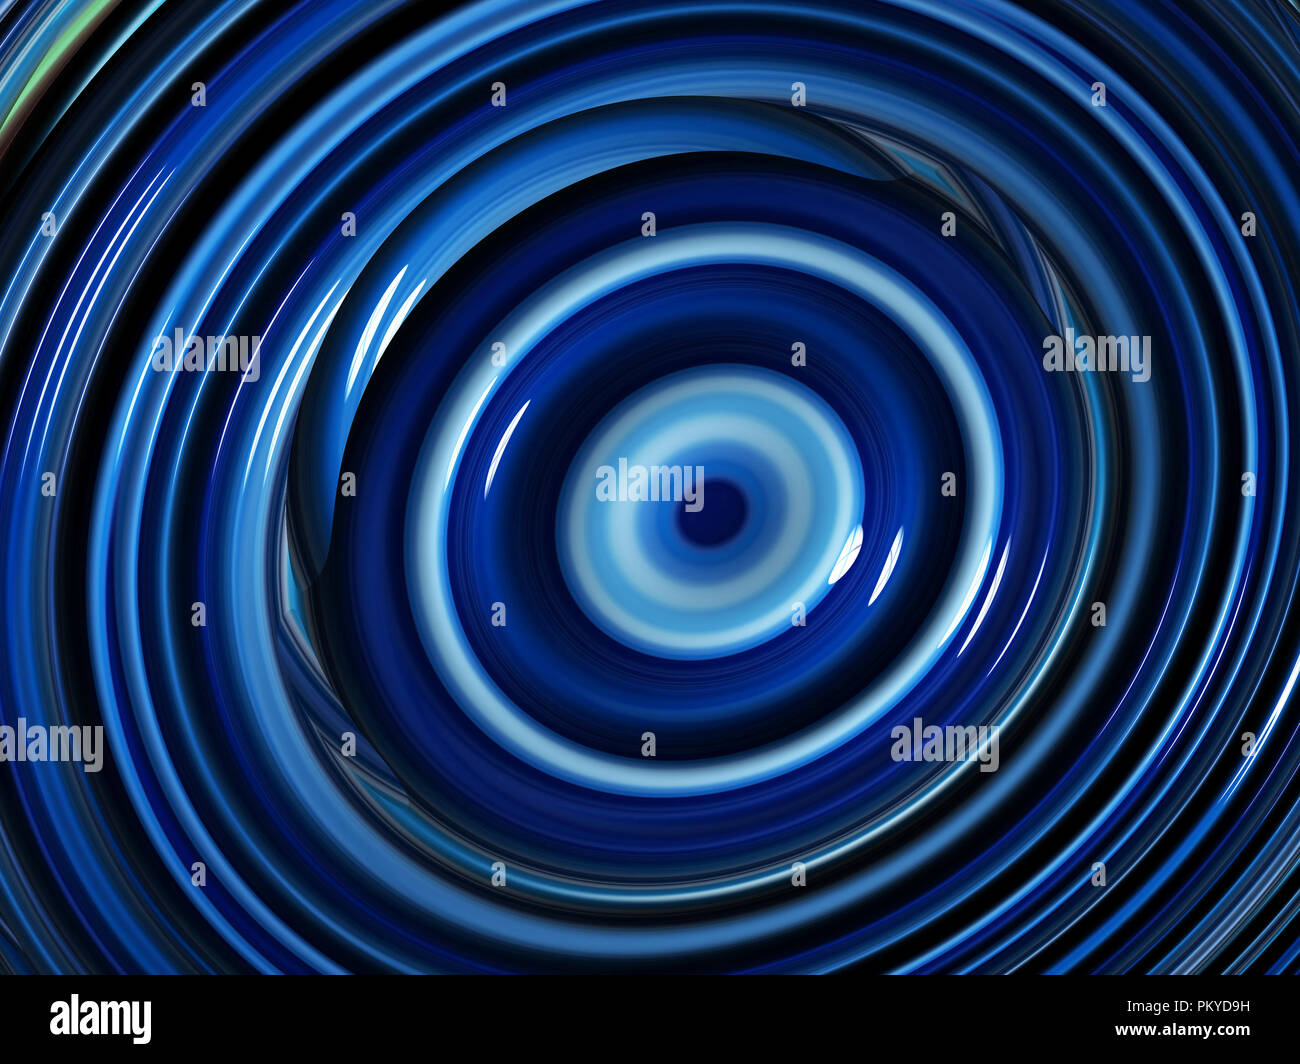 Circular Ripple Stock Photos & Circular Ripple Stock Images